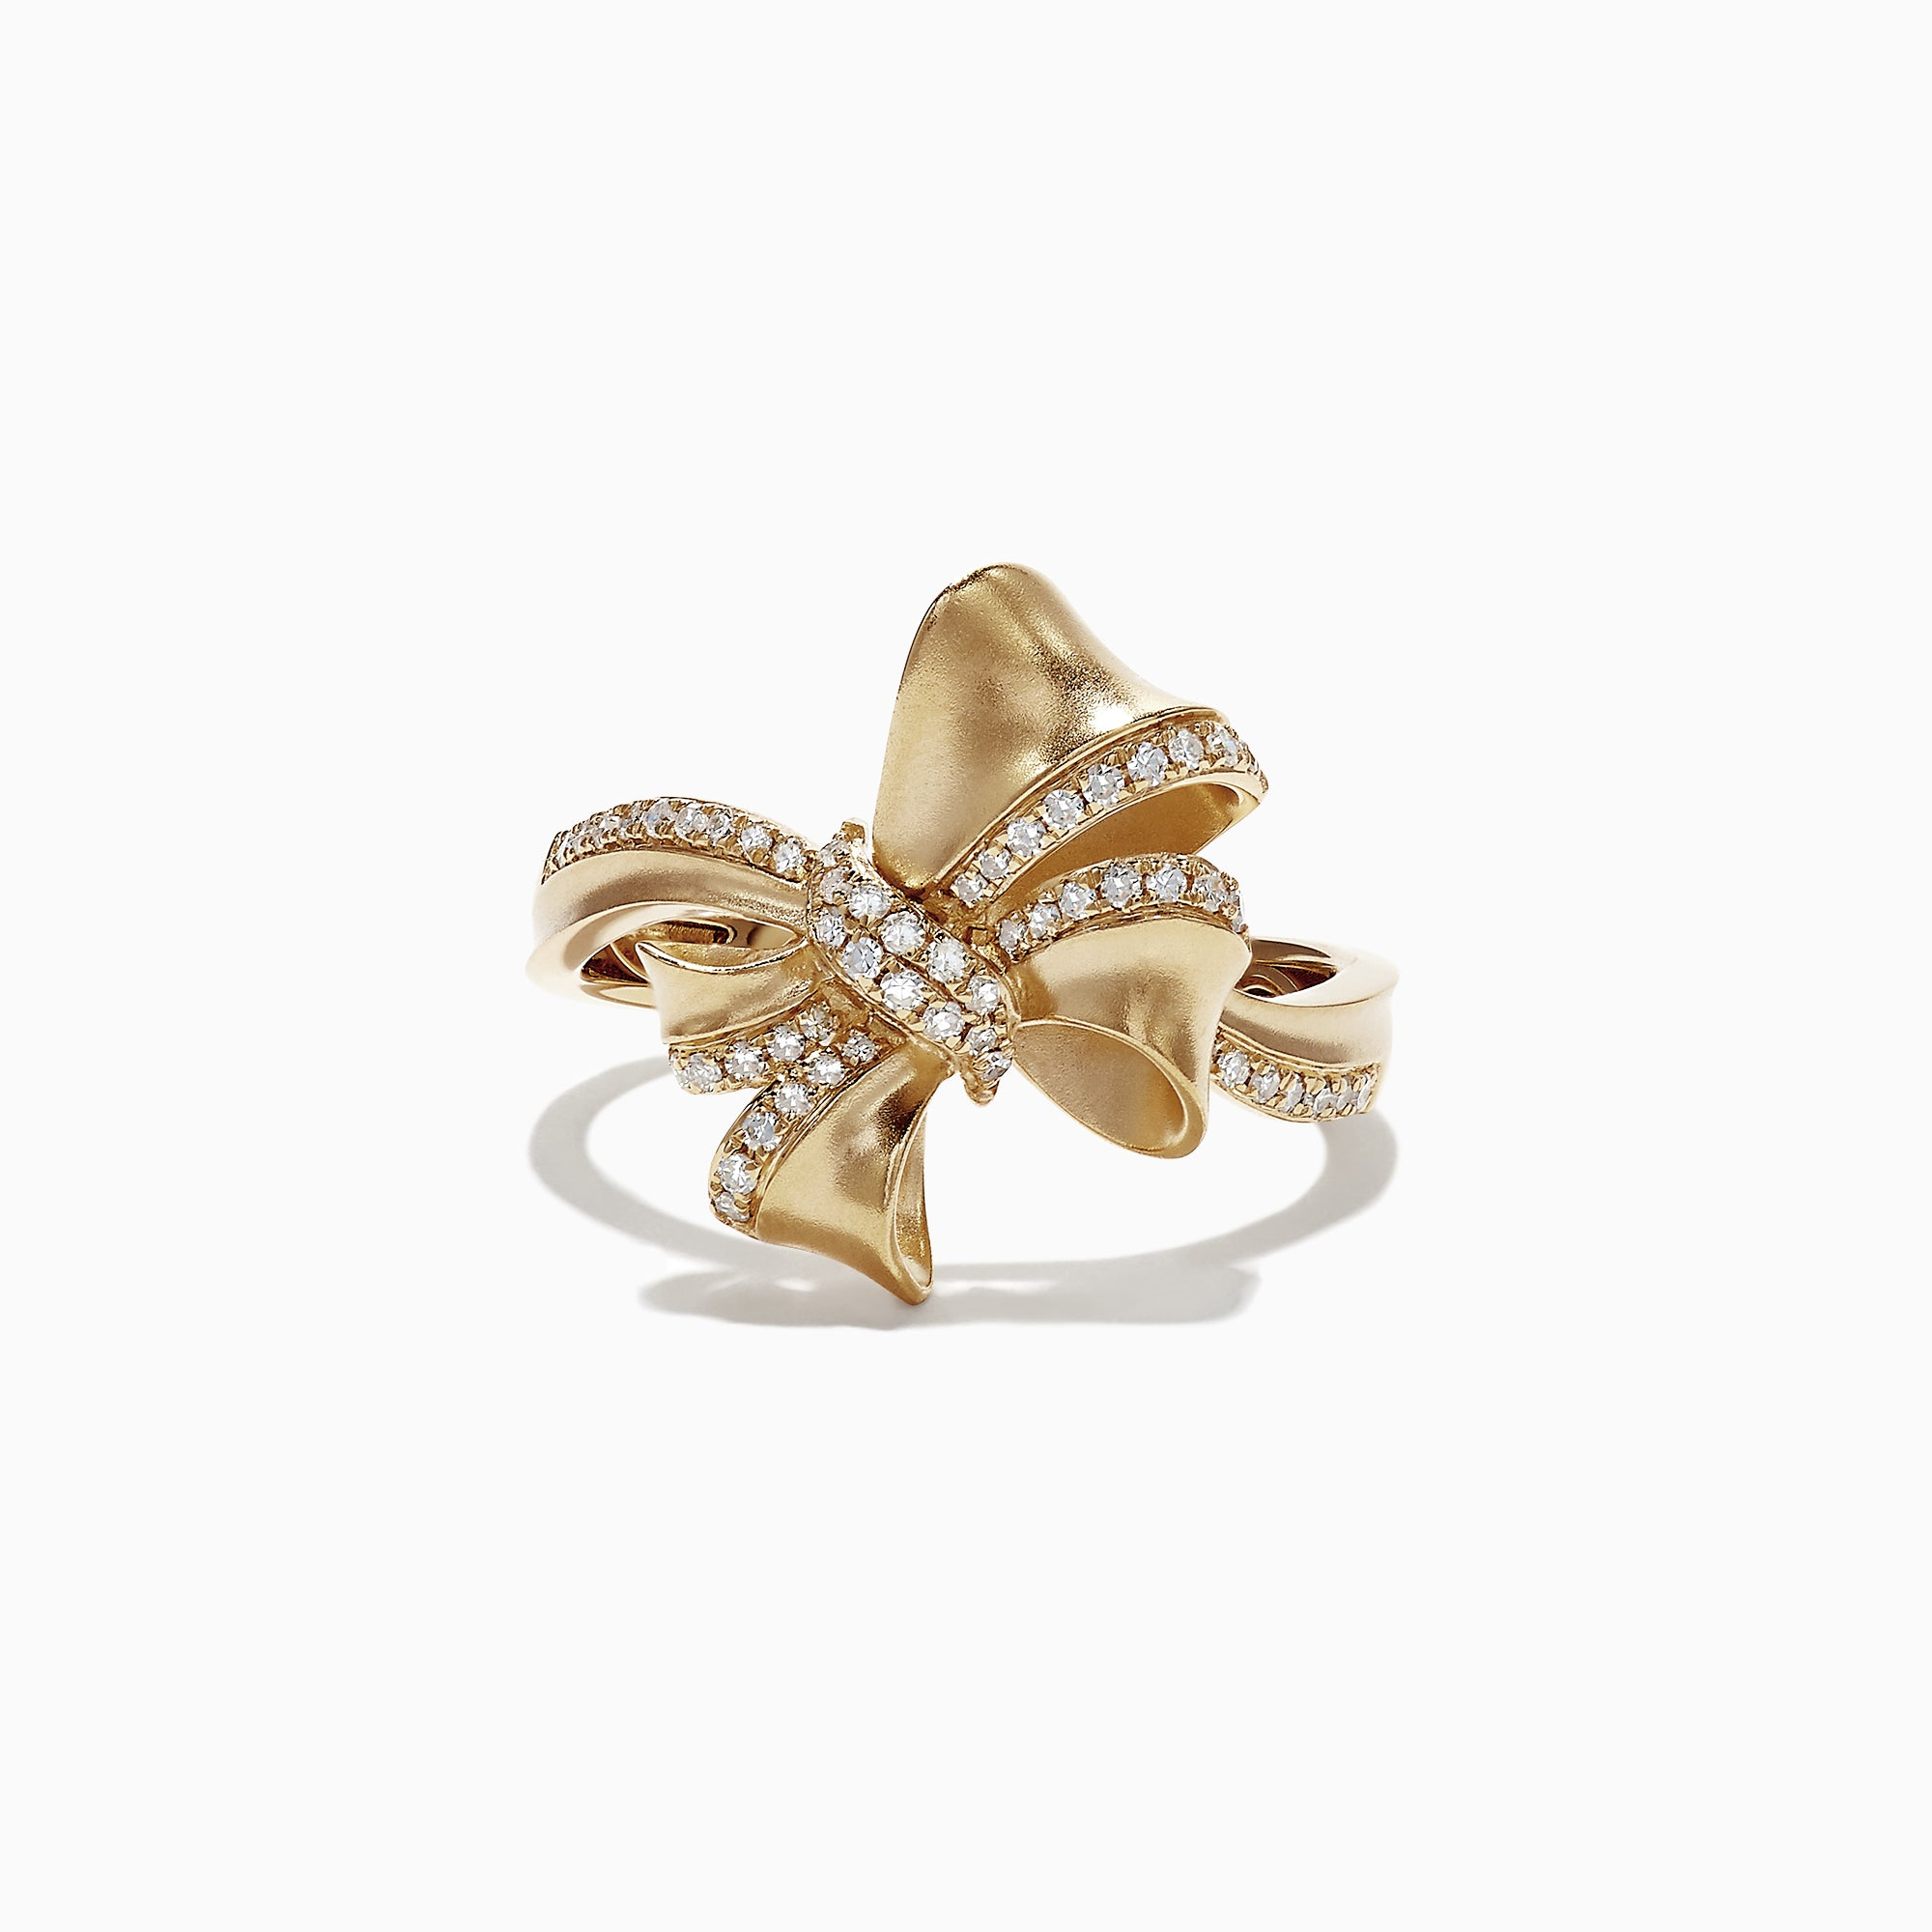 Effy D'Oro 14K Yellow Gold Diamond Bow Ring, 0.23 TCW